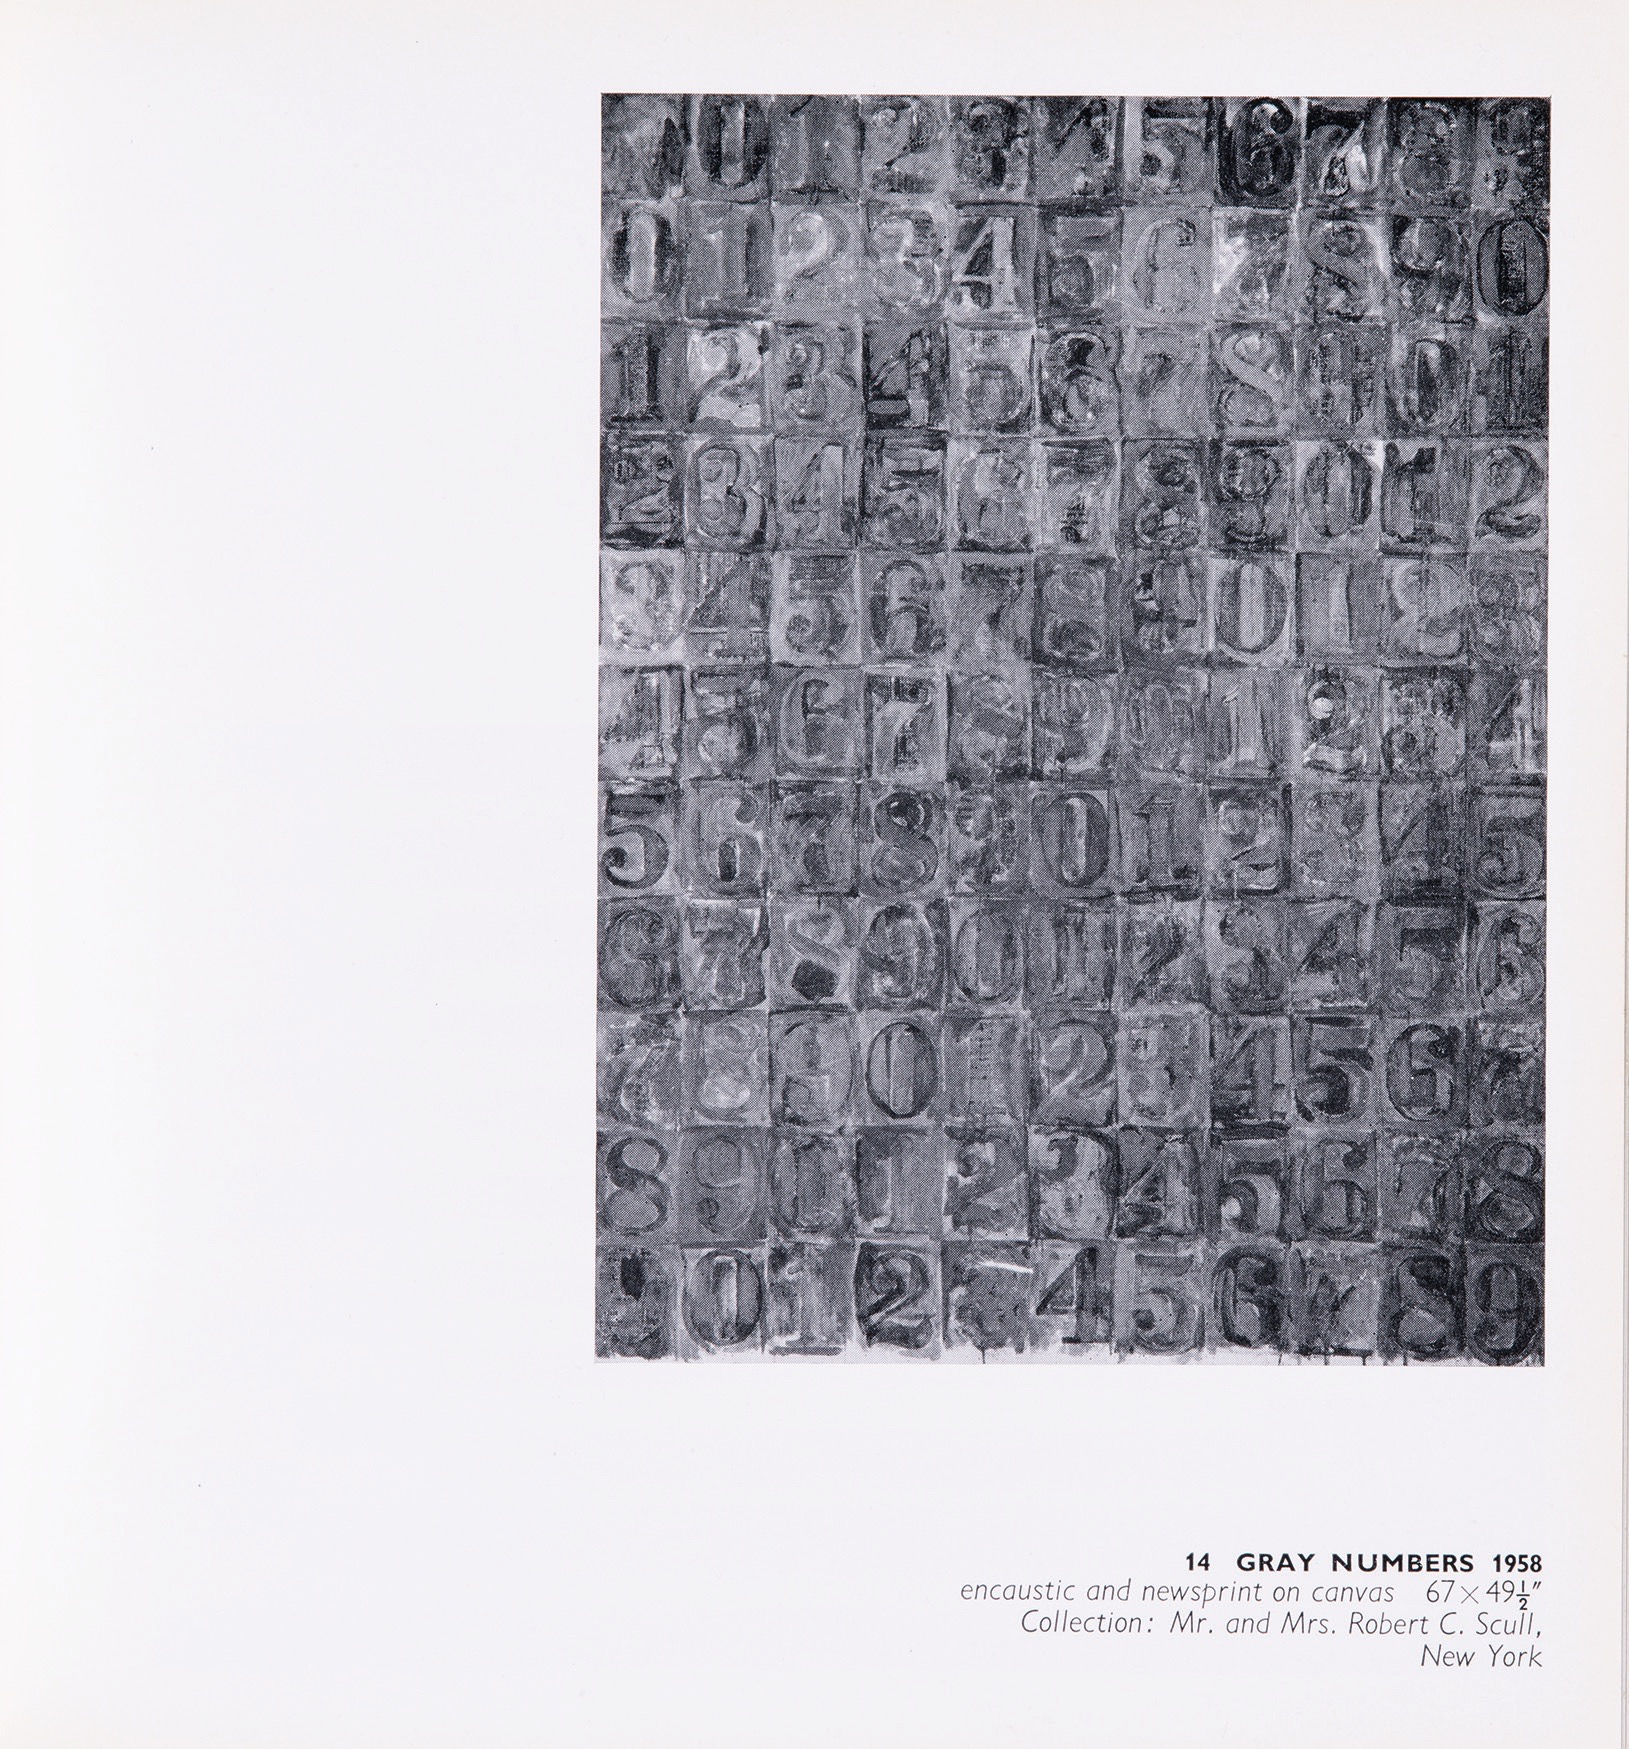 Whitechapel Gallery, December 1964 (London: Whitechapel Gallery, 1964): plate 14.